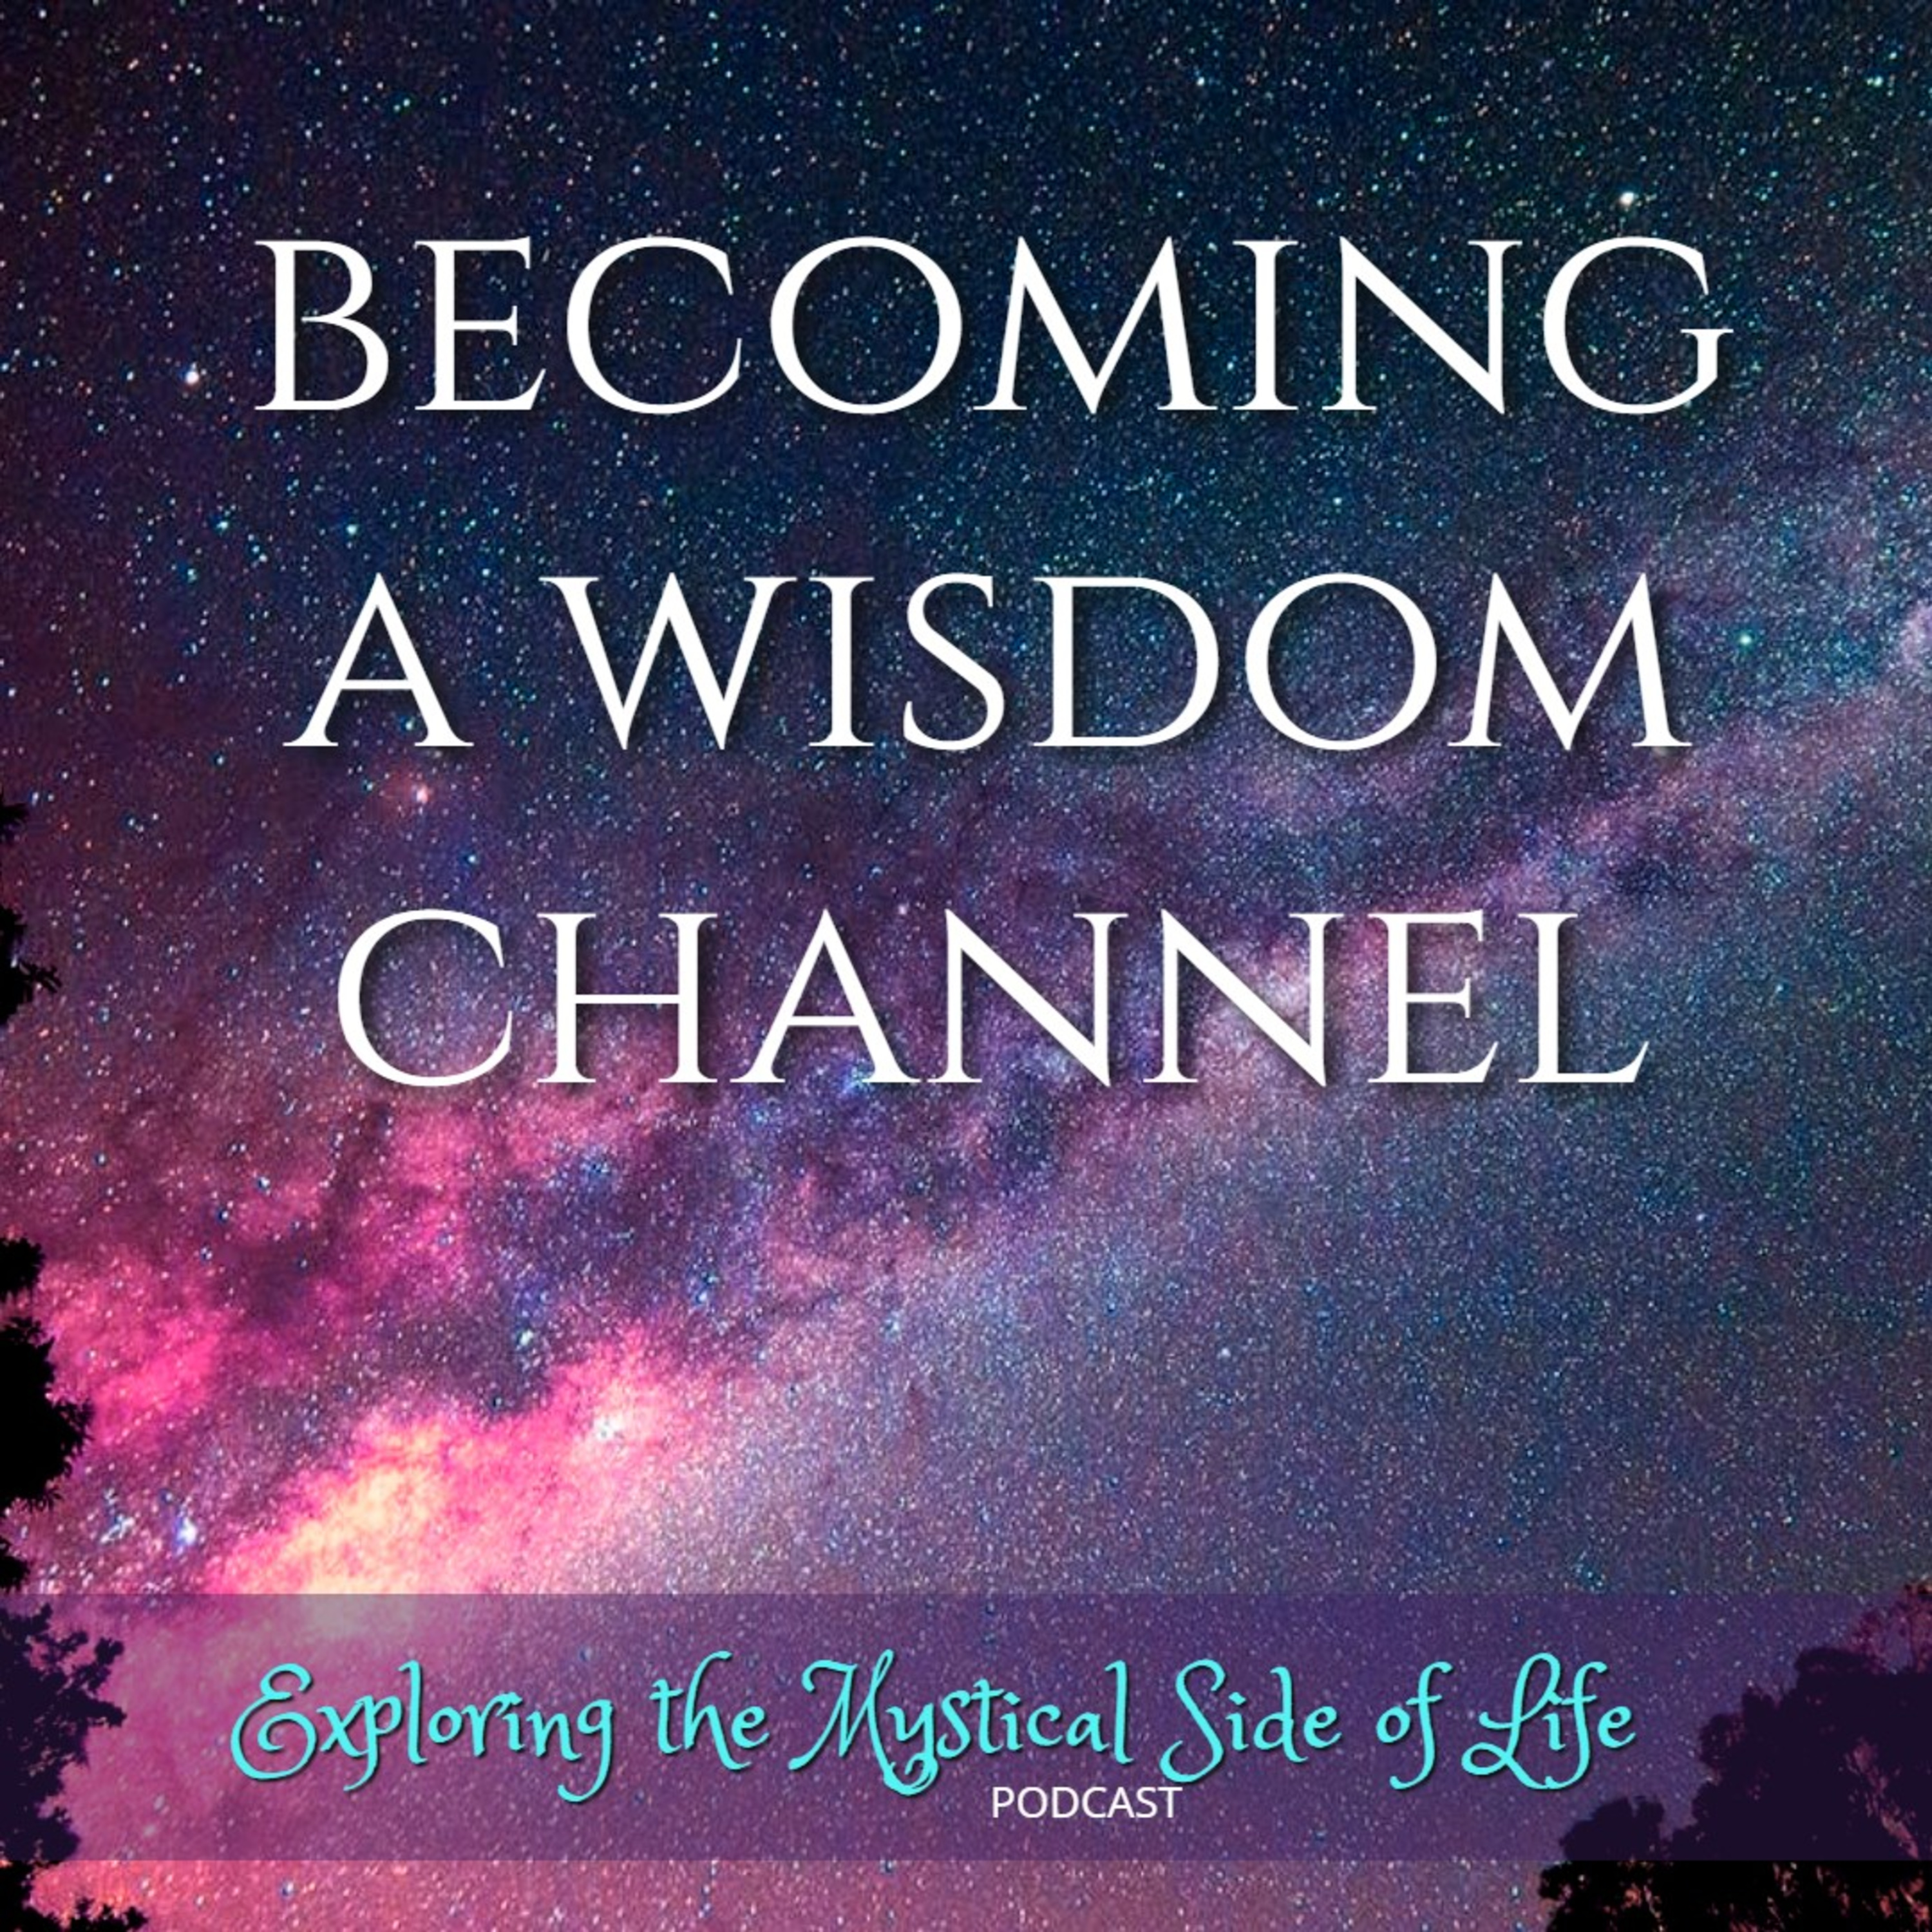 Becoming a Wisdom Channel